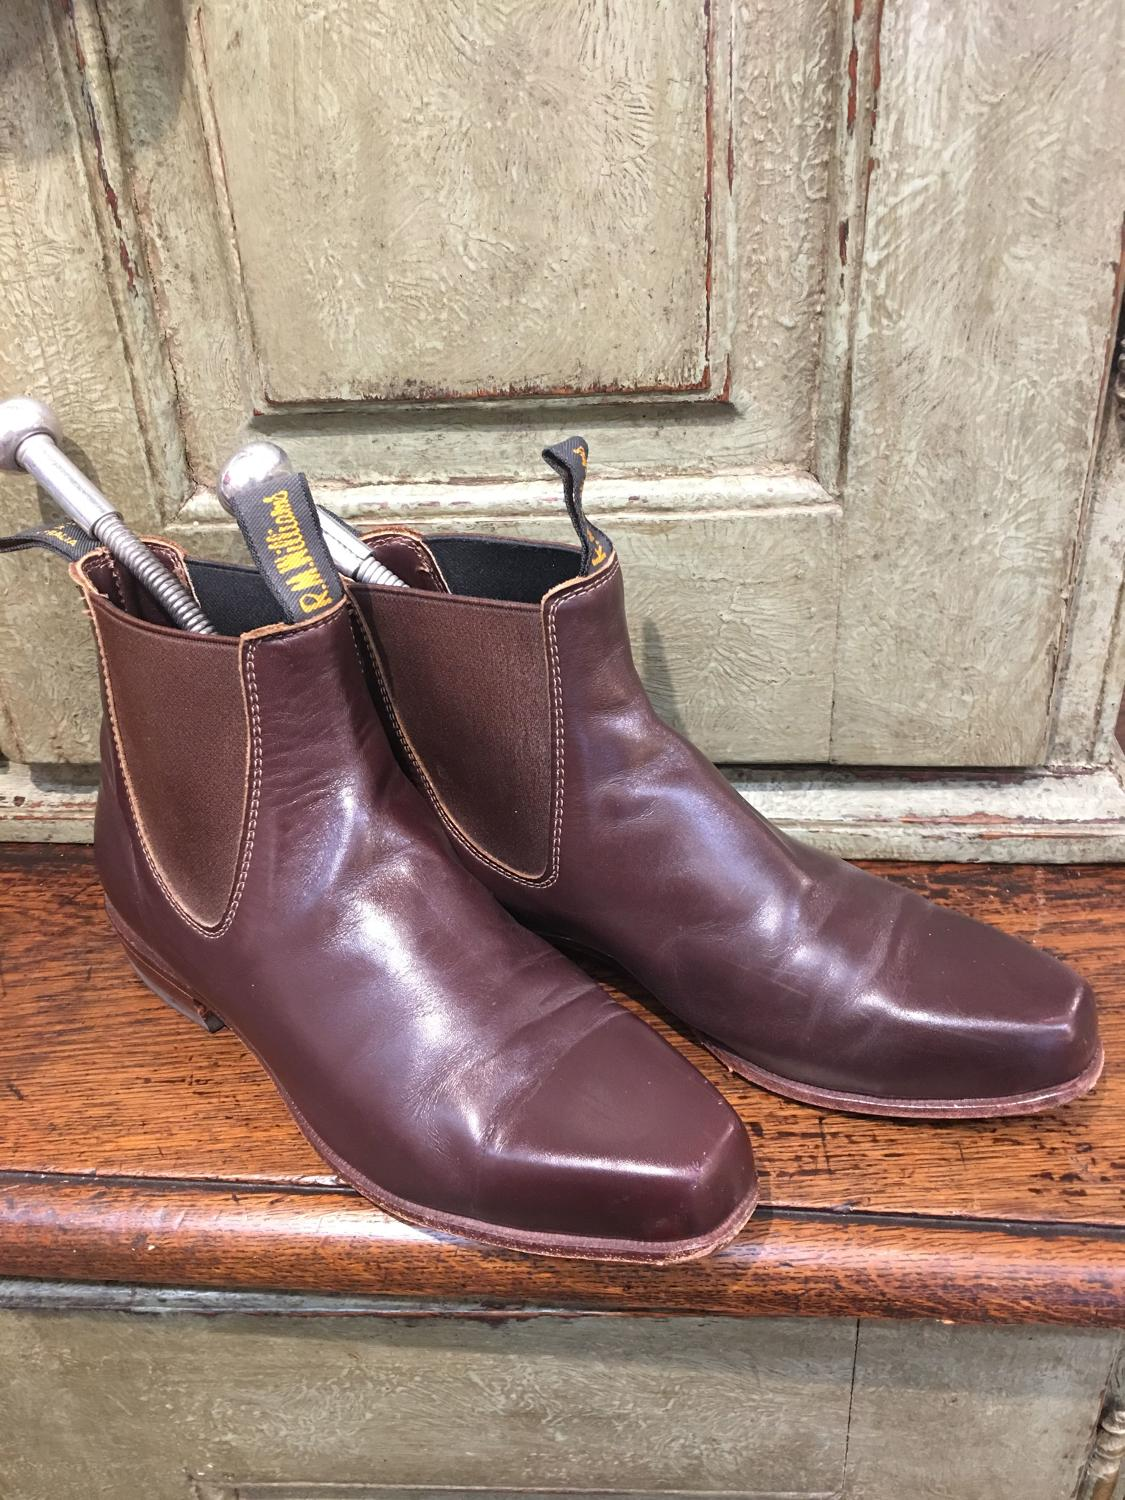 Gently worn RM Williams leather boots UK size 5.5/38.5